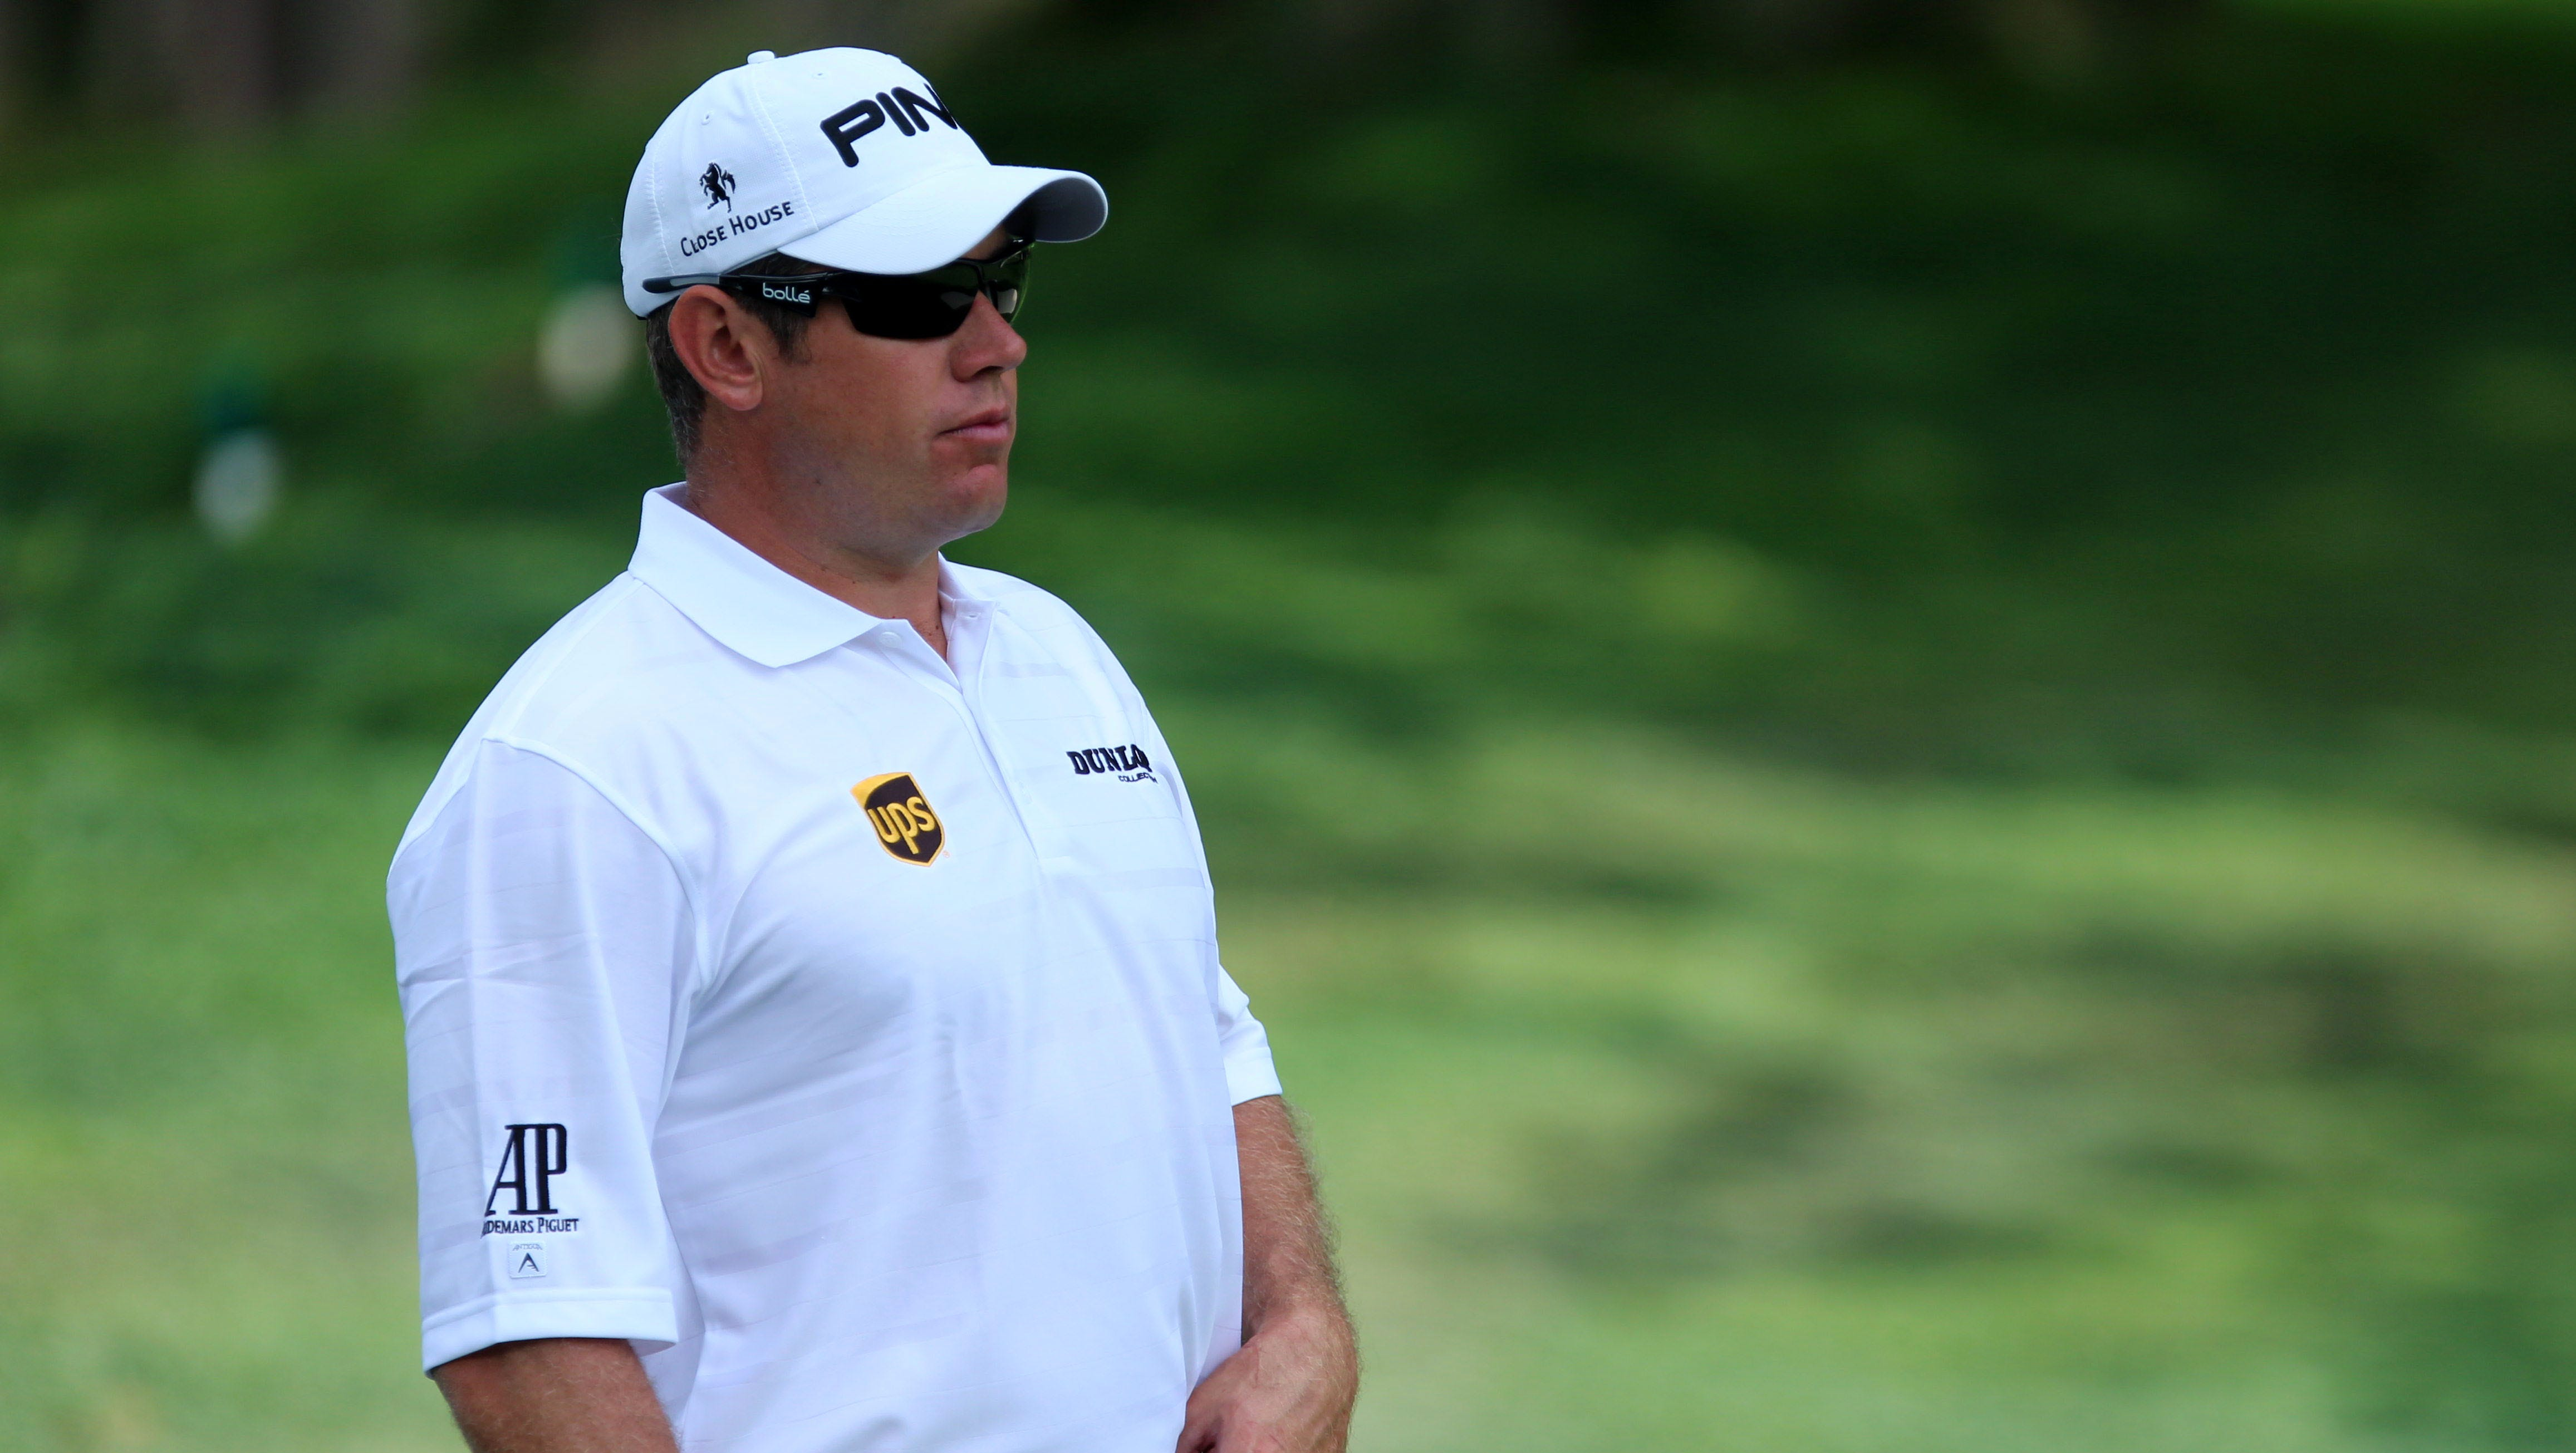 Lee Westwood on the practice range during the practice round of the 95th PGA Championship at Oak Hill Country Club.